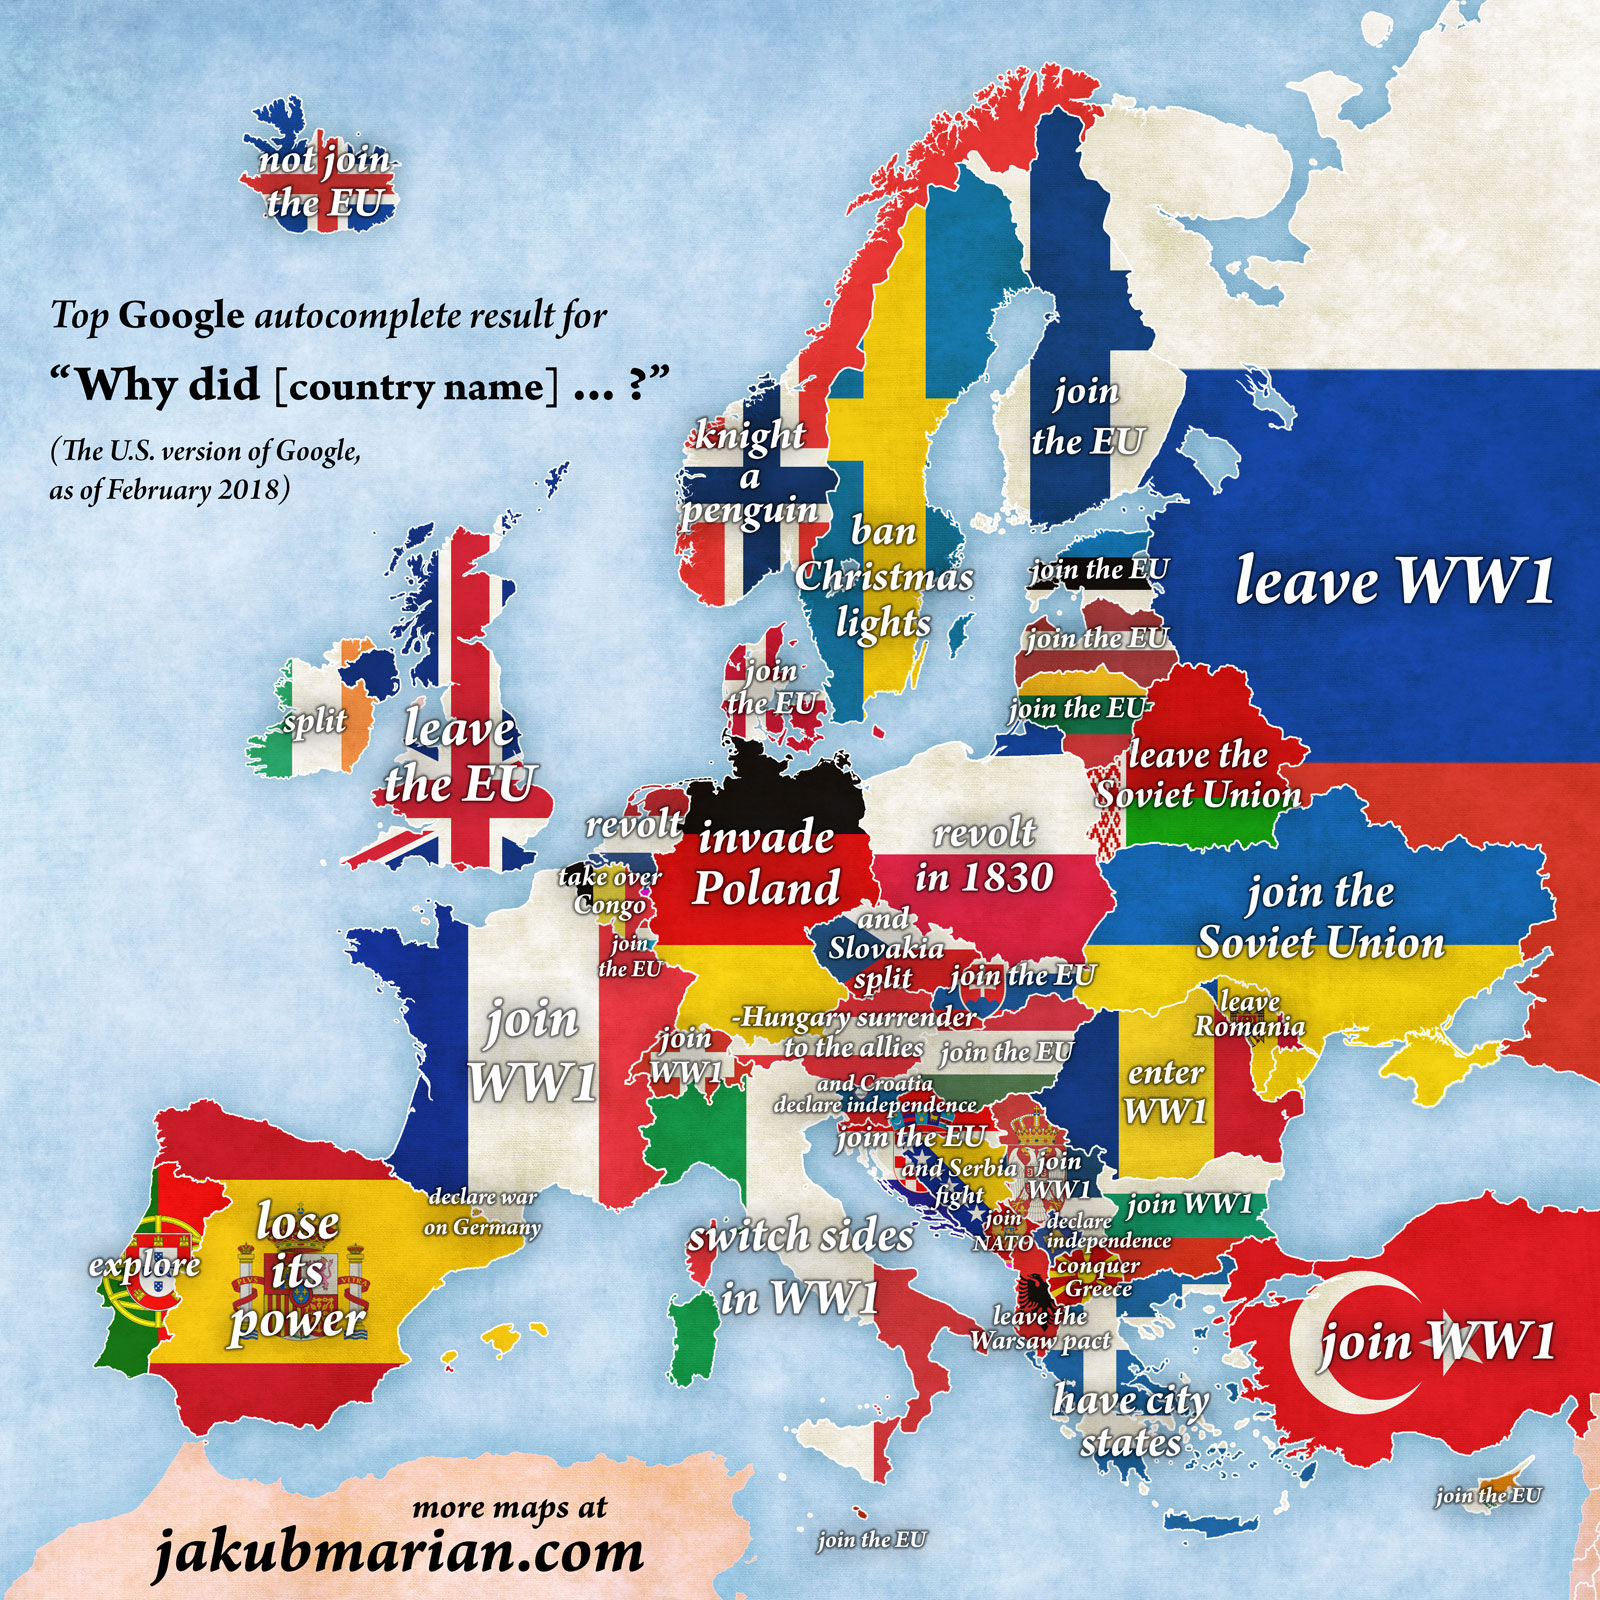 Warsaw Europe Map.Google Autocomplete Map Of Europe Reveals Most Searched For